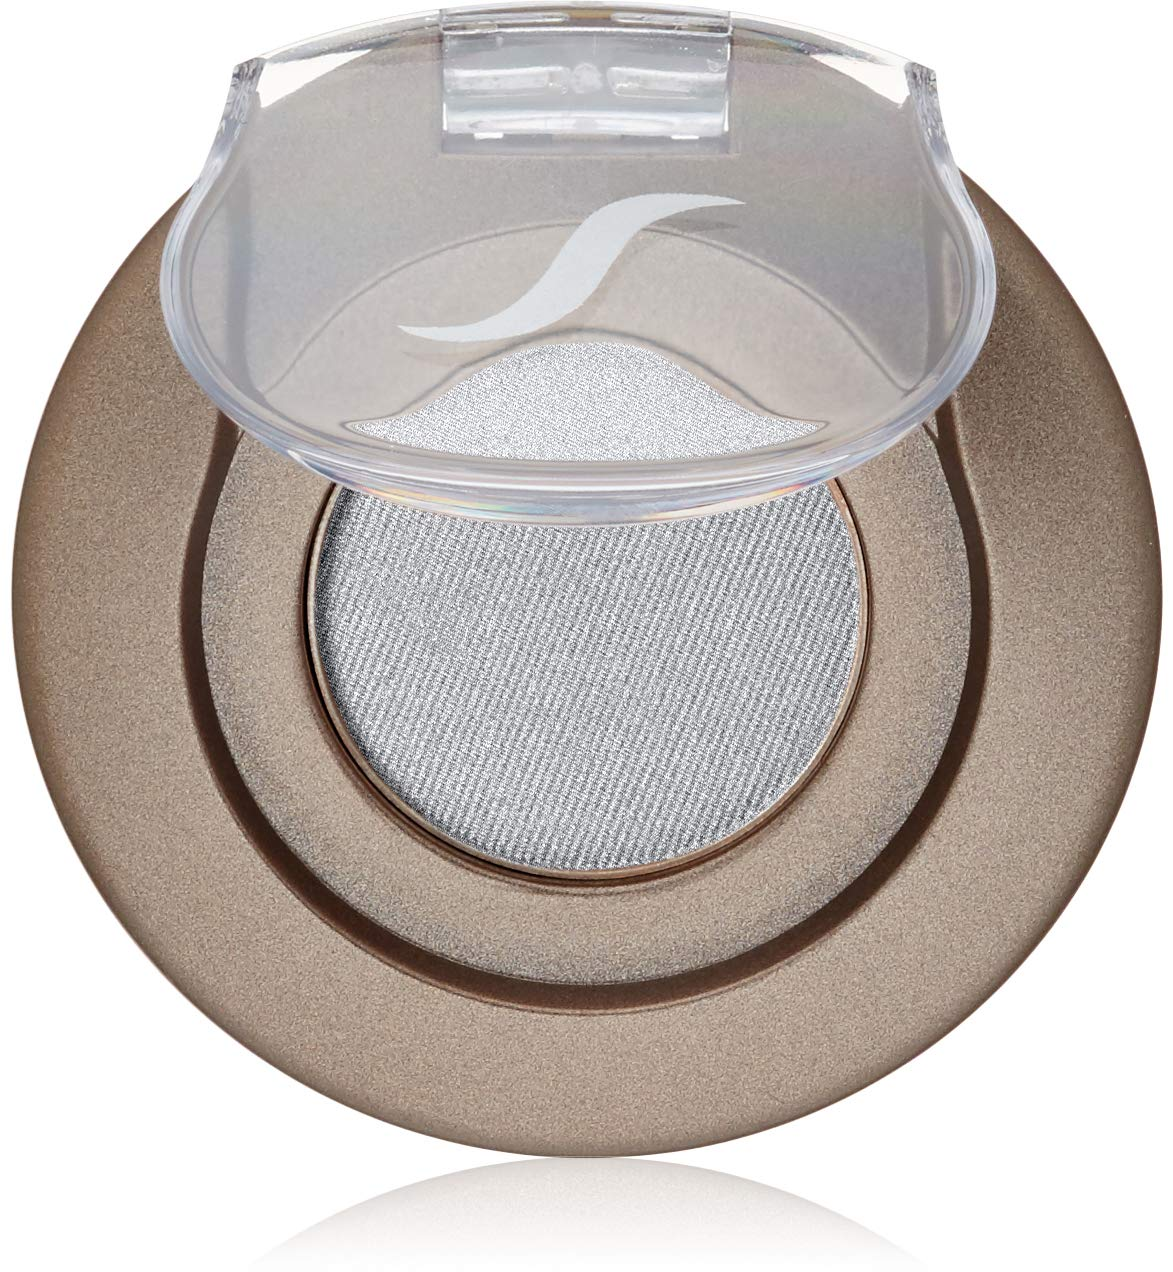 Sorme Cosmetics Mineral Botanicals Eye Shadow, Sterling, 0.05 Ounce